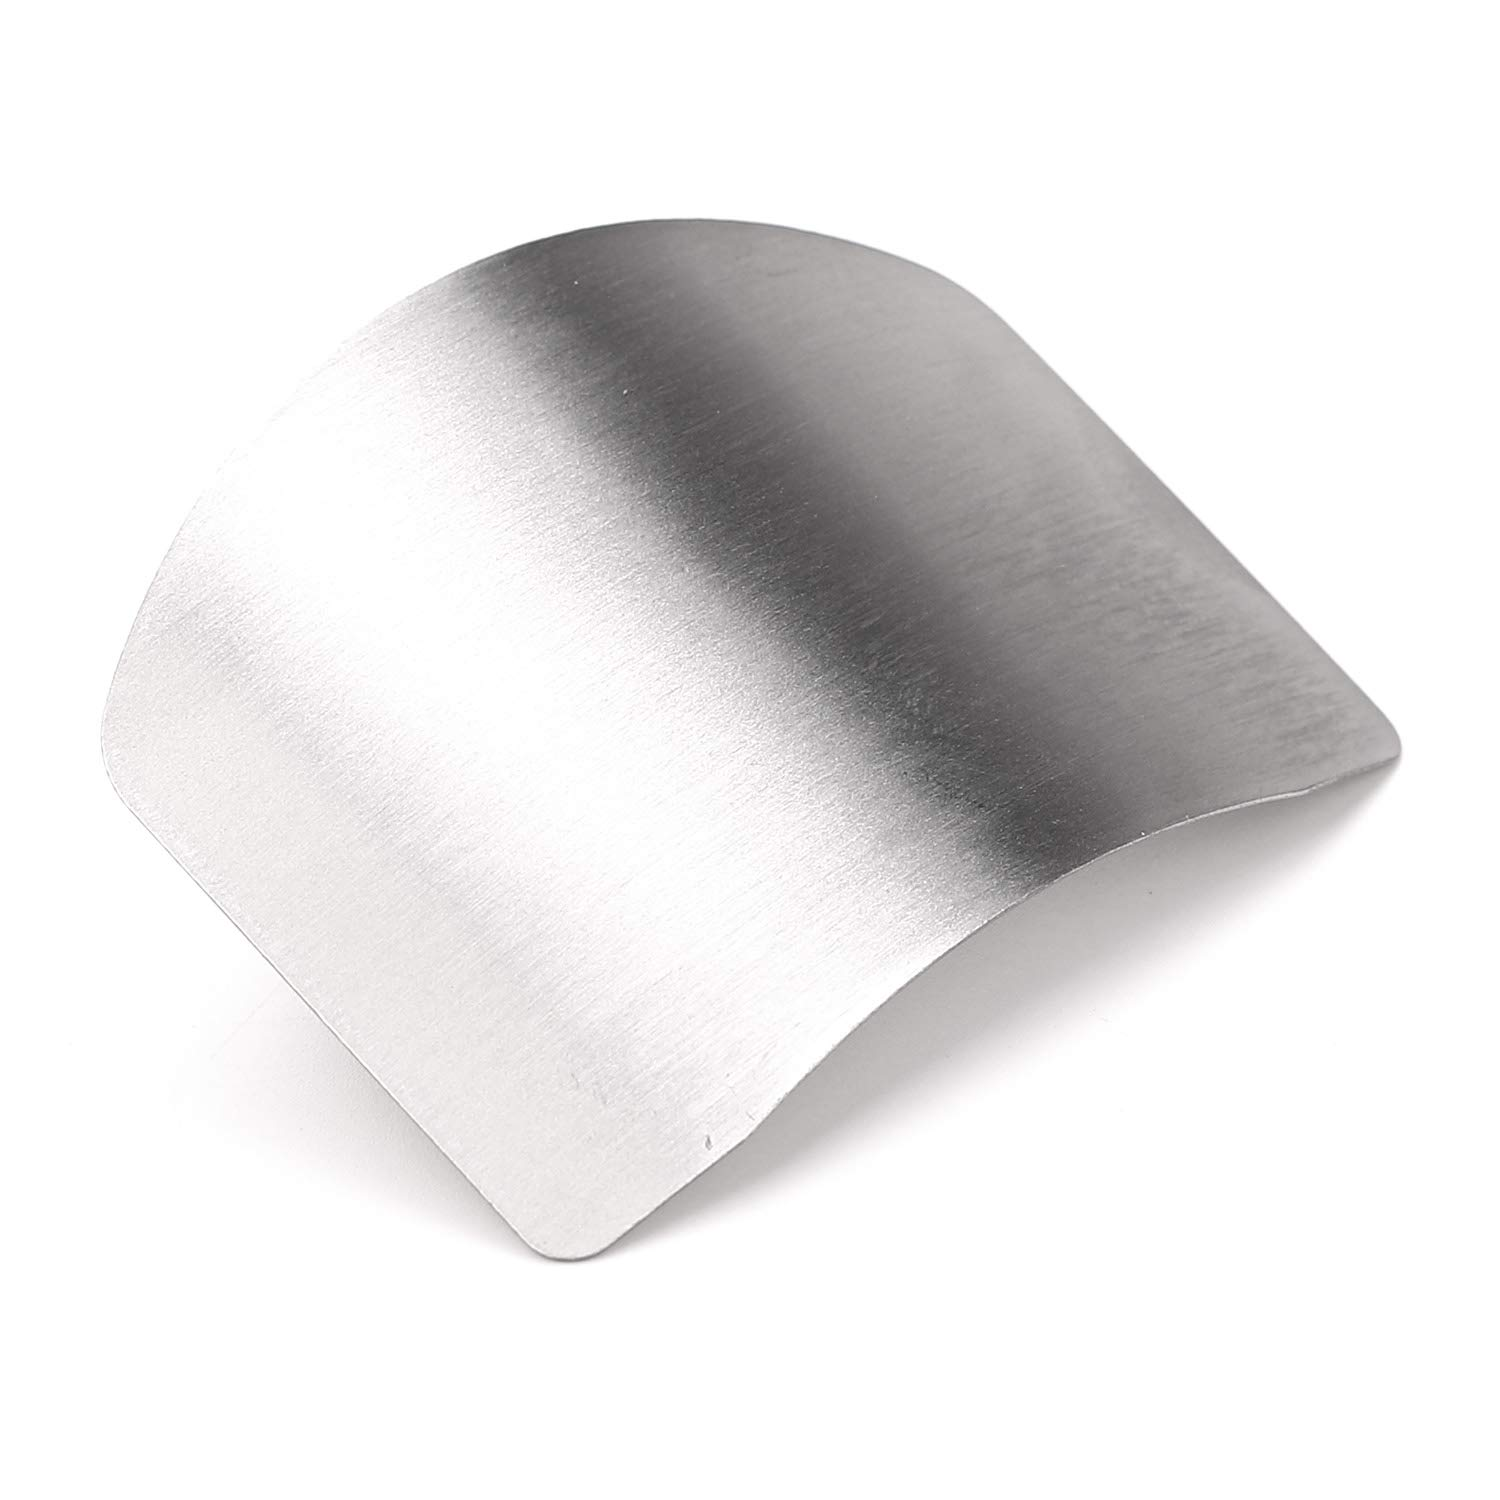 Zelta Finger Guard Digiclass Slicing Cutting Protector 2.6 Inches Stainless Steel Finger Protector Cutting by Zelta (Image #7)